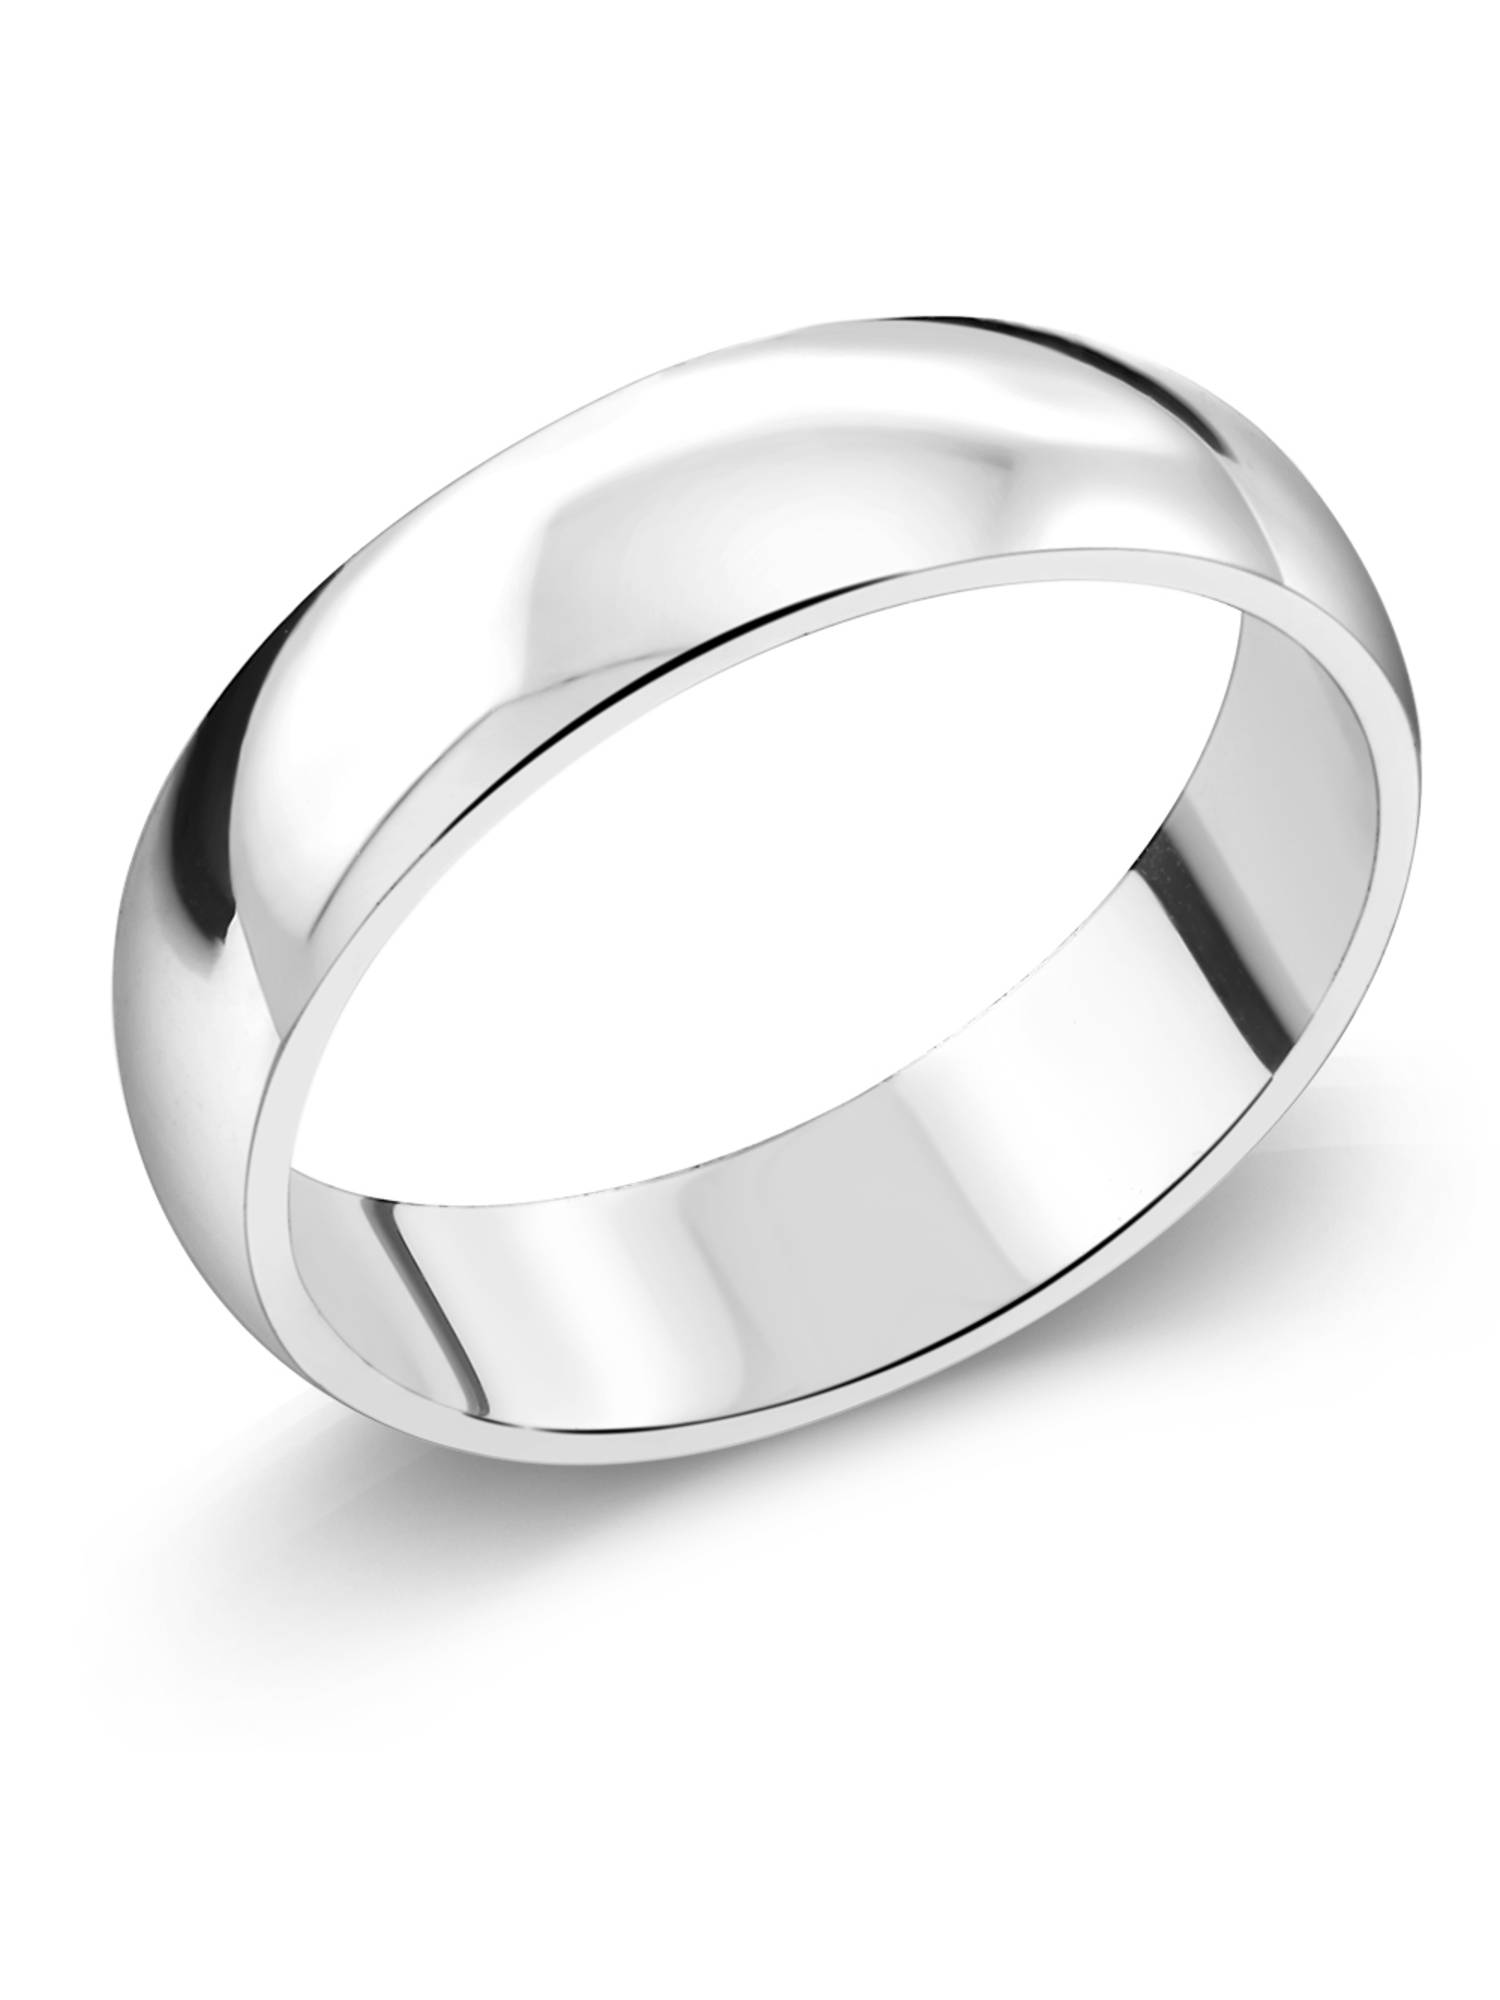 Shiny /& Smooth Ring 925 Silver Ring 8mm Wide Wedding Band